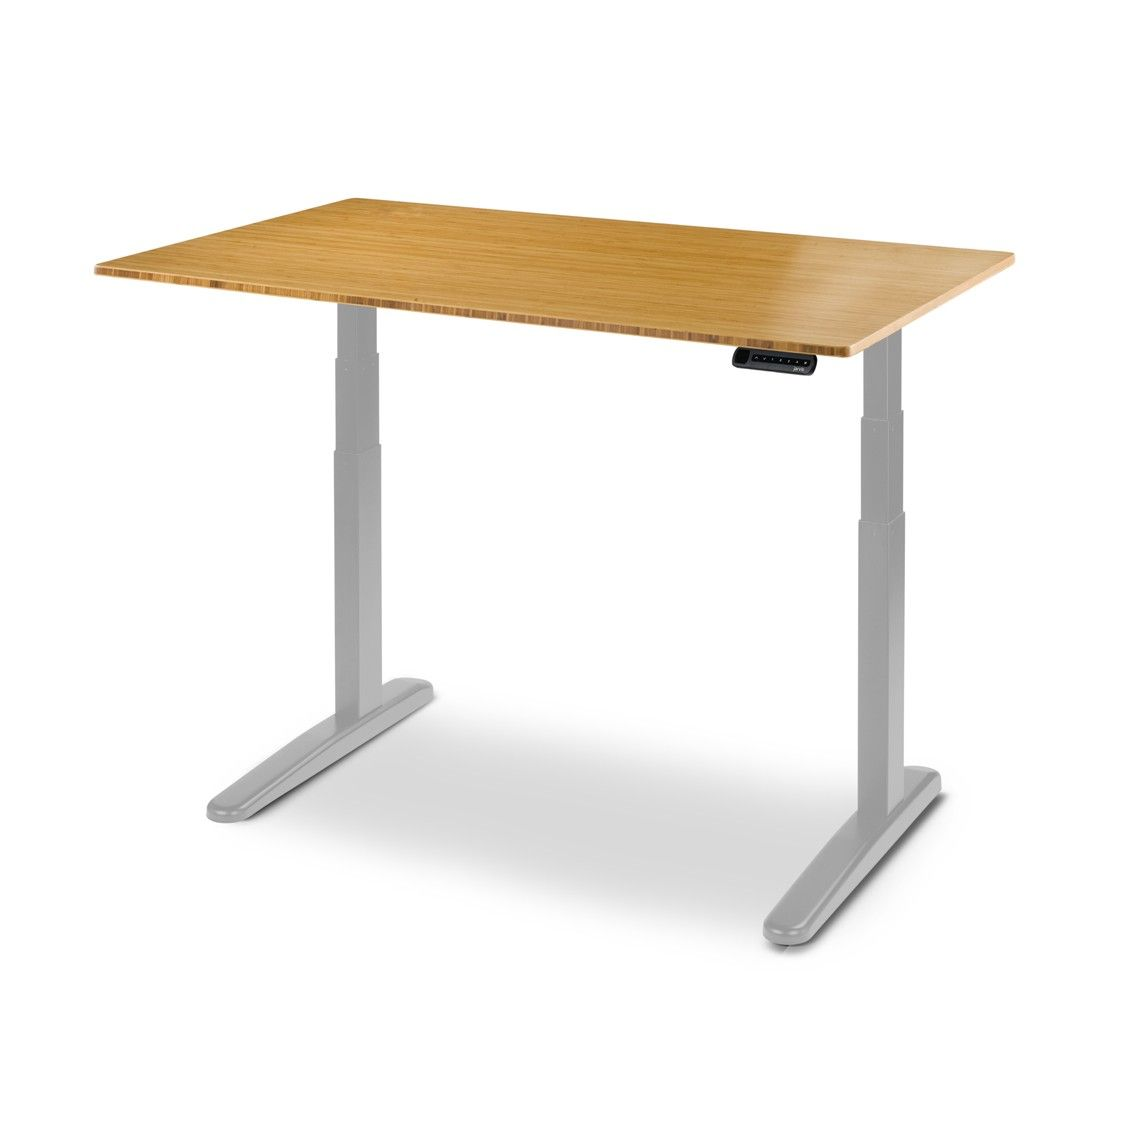 Magnificent Jarvis Bamboo Standing Desk Ergo Depot Products Download Free Architecture Designs Xaembritishbridgeorg